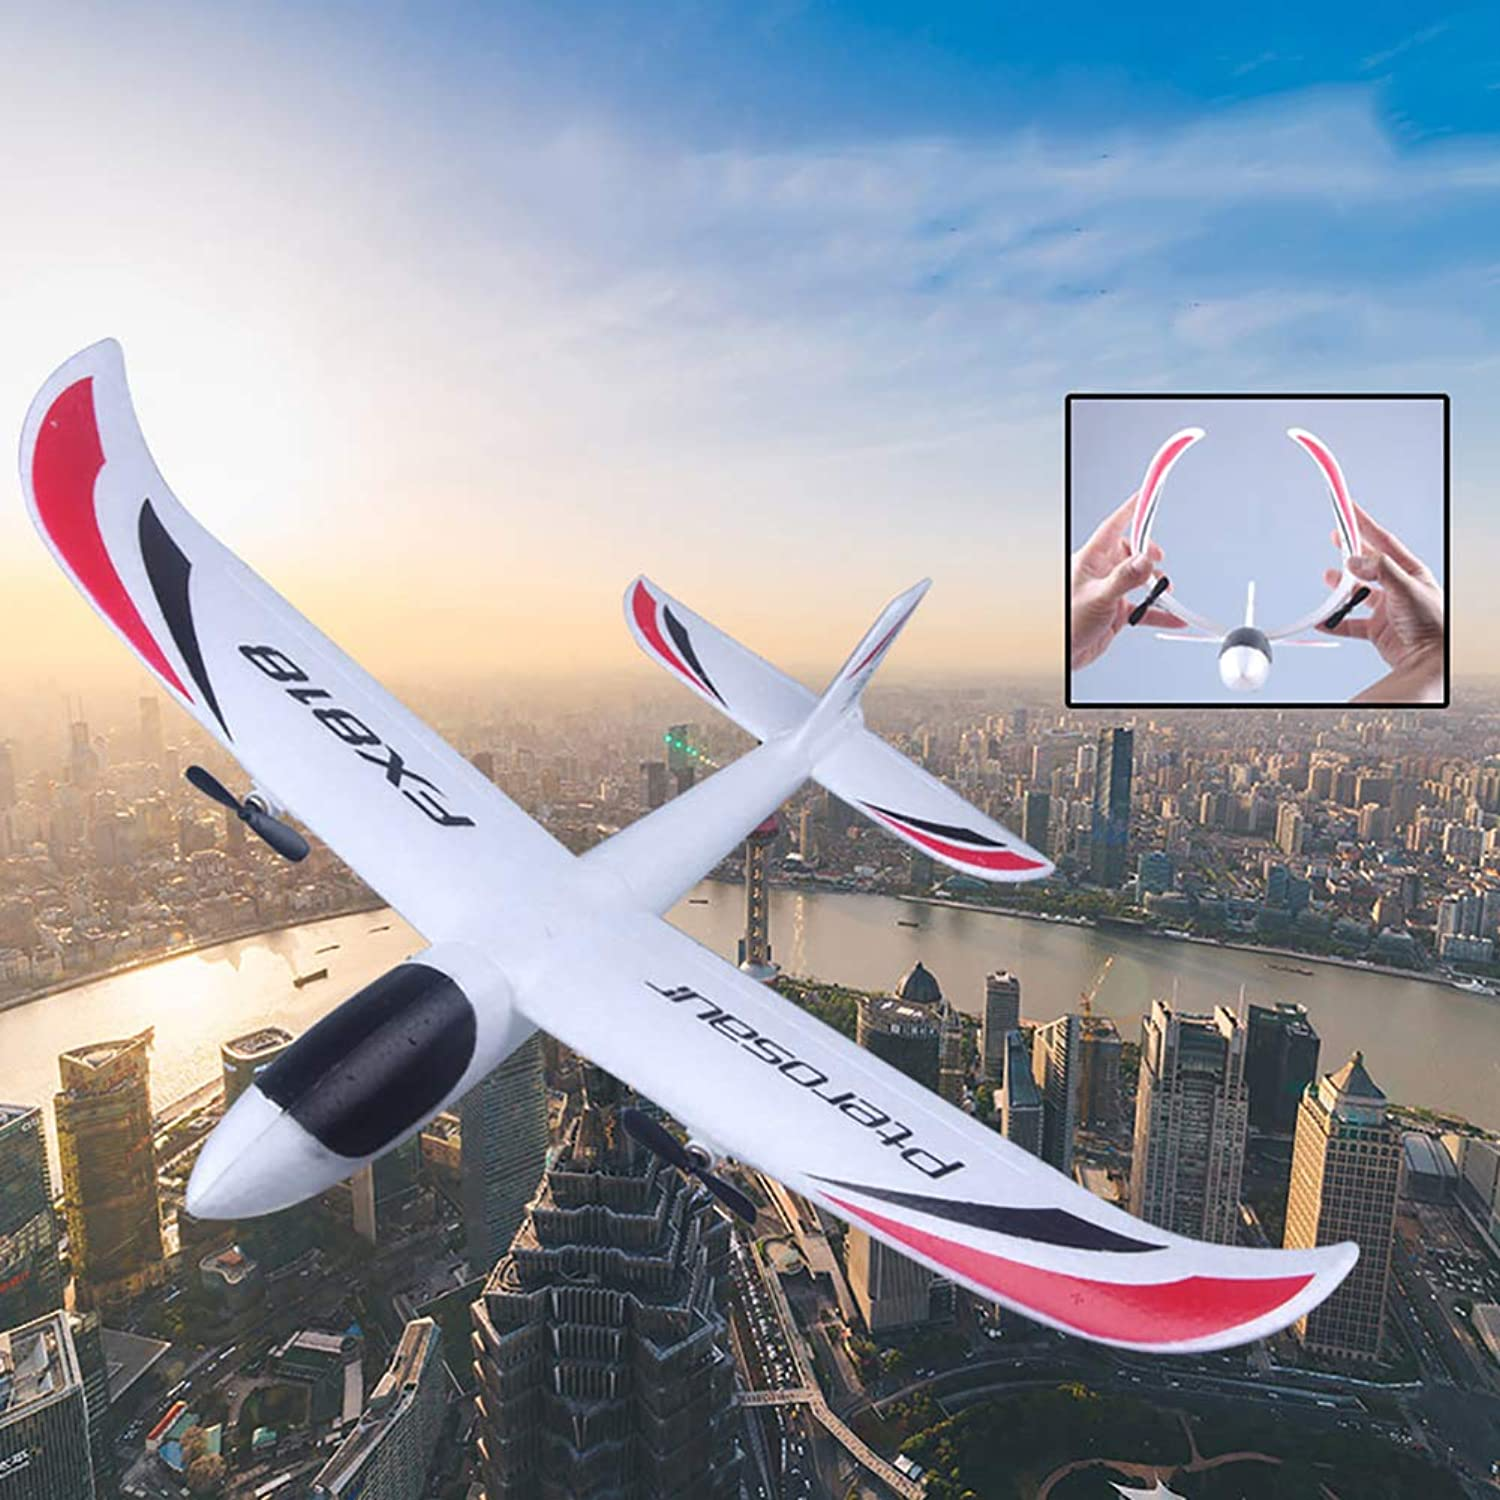 ShiYsRL FX-818 2.4G EPP Remote Control RC Airplane Glider Toy with LED Light Kids Gift